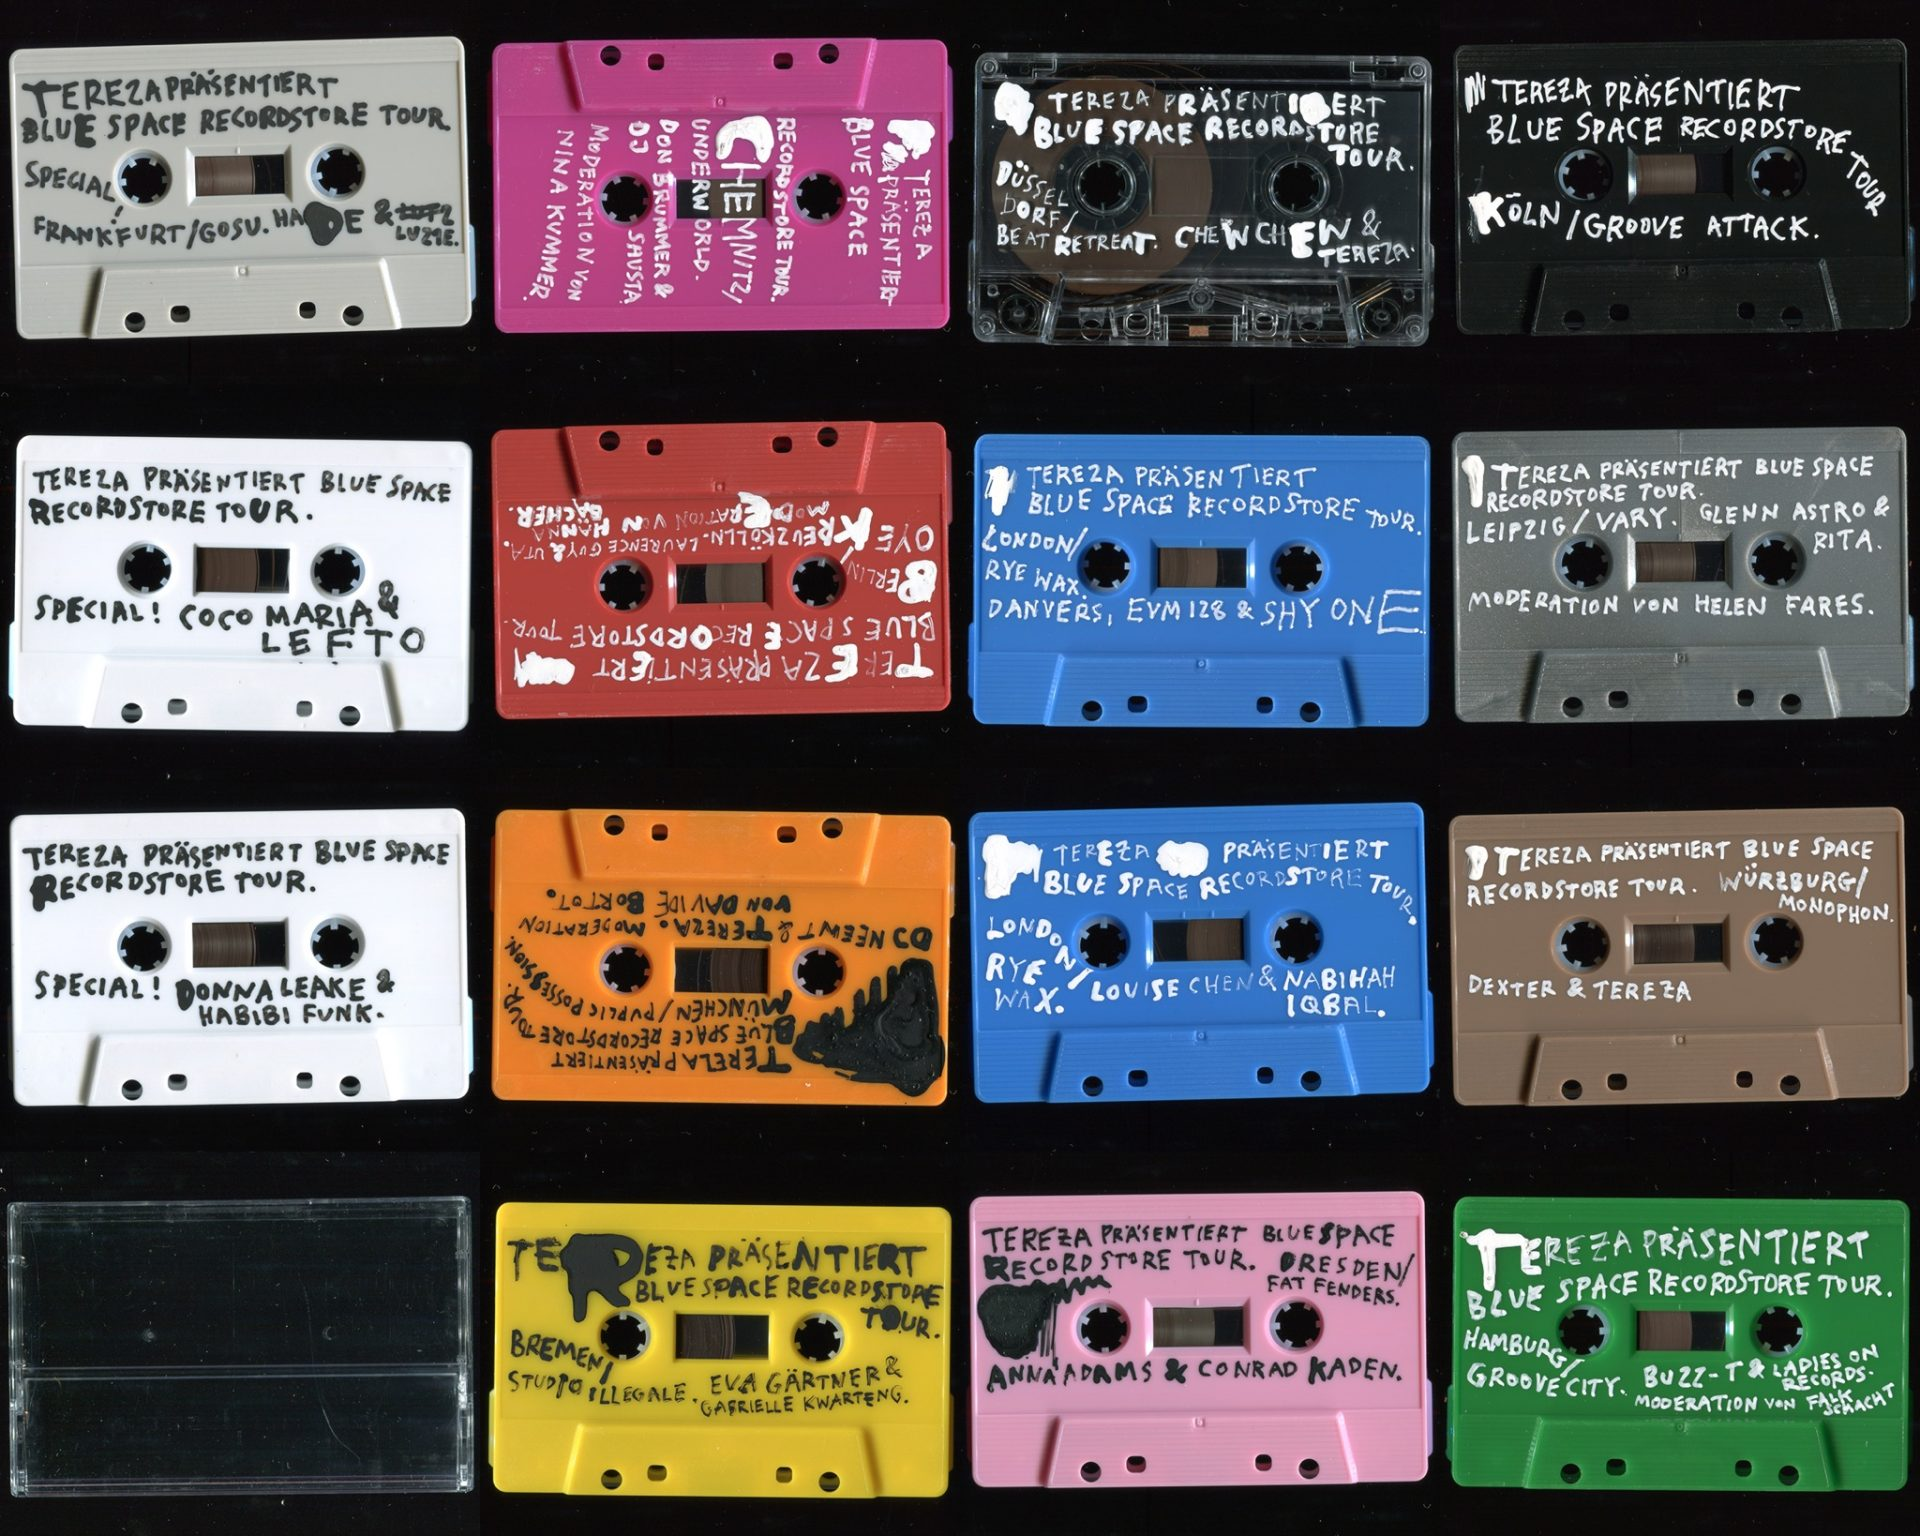 Cassettes for a Cause: Bid on Tapes with LeftO, Dexter, Habibi Funk, Glenn Astro & others to Support an Anti-Discrimination Charity